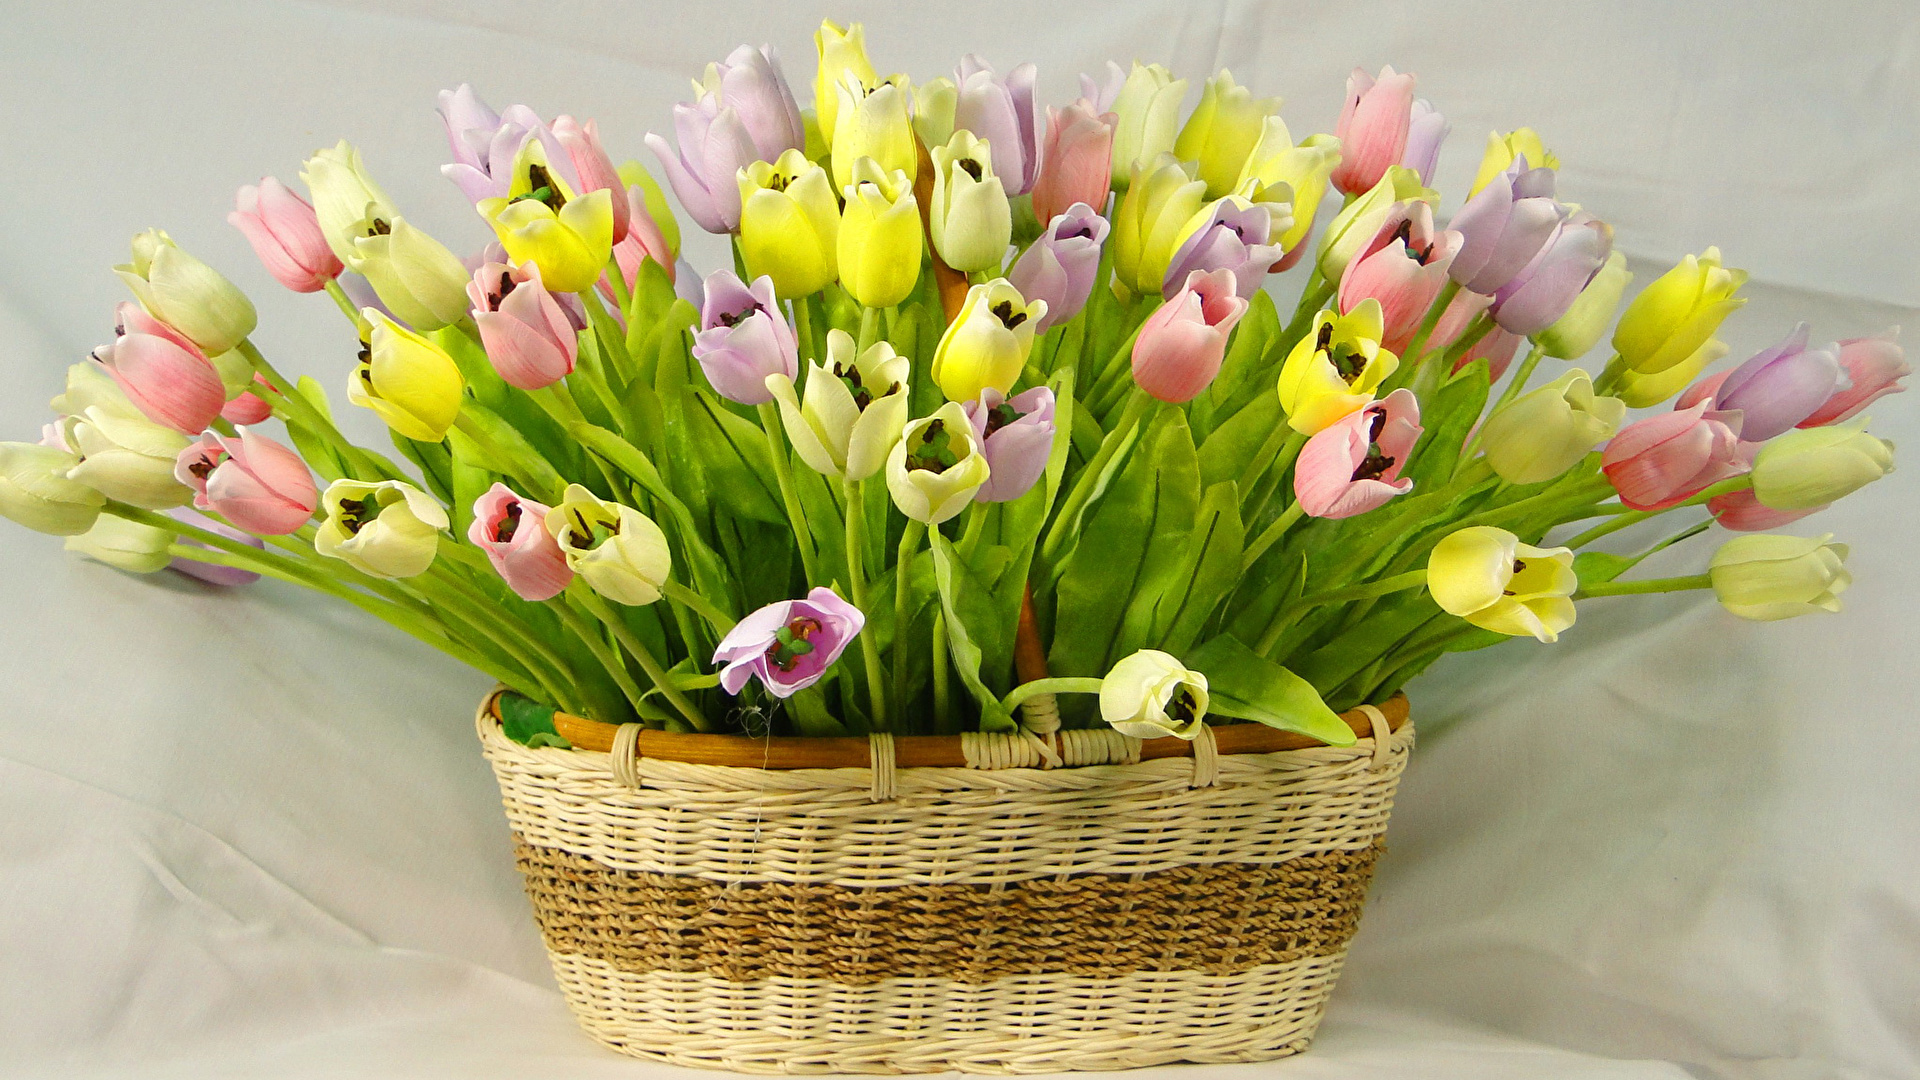 Basket With Flowers background image